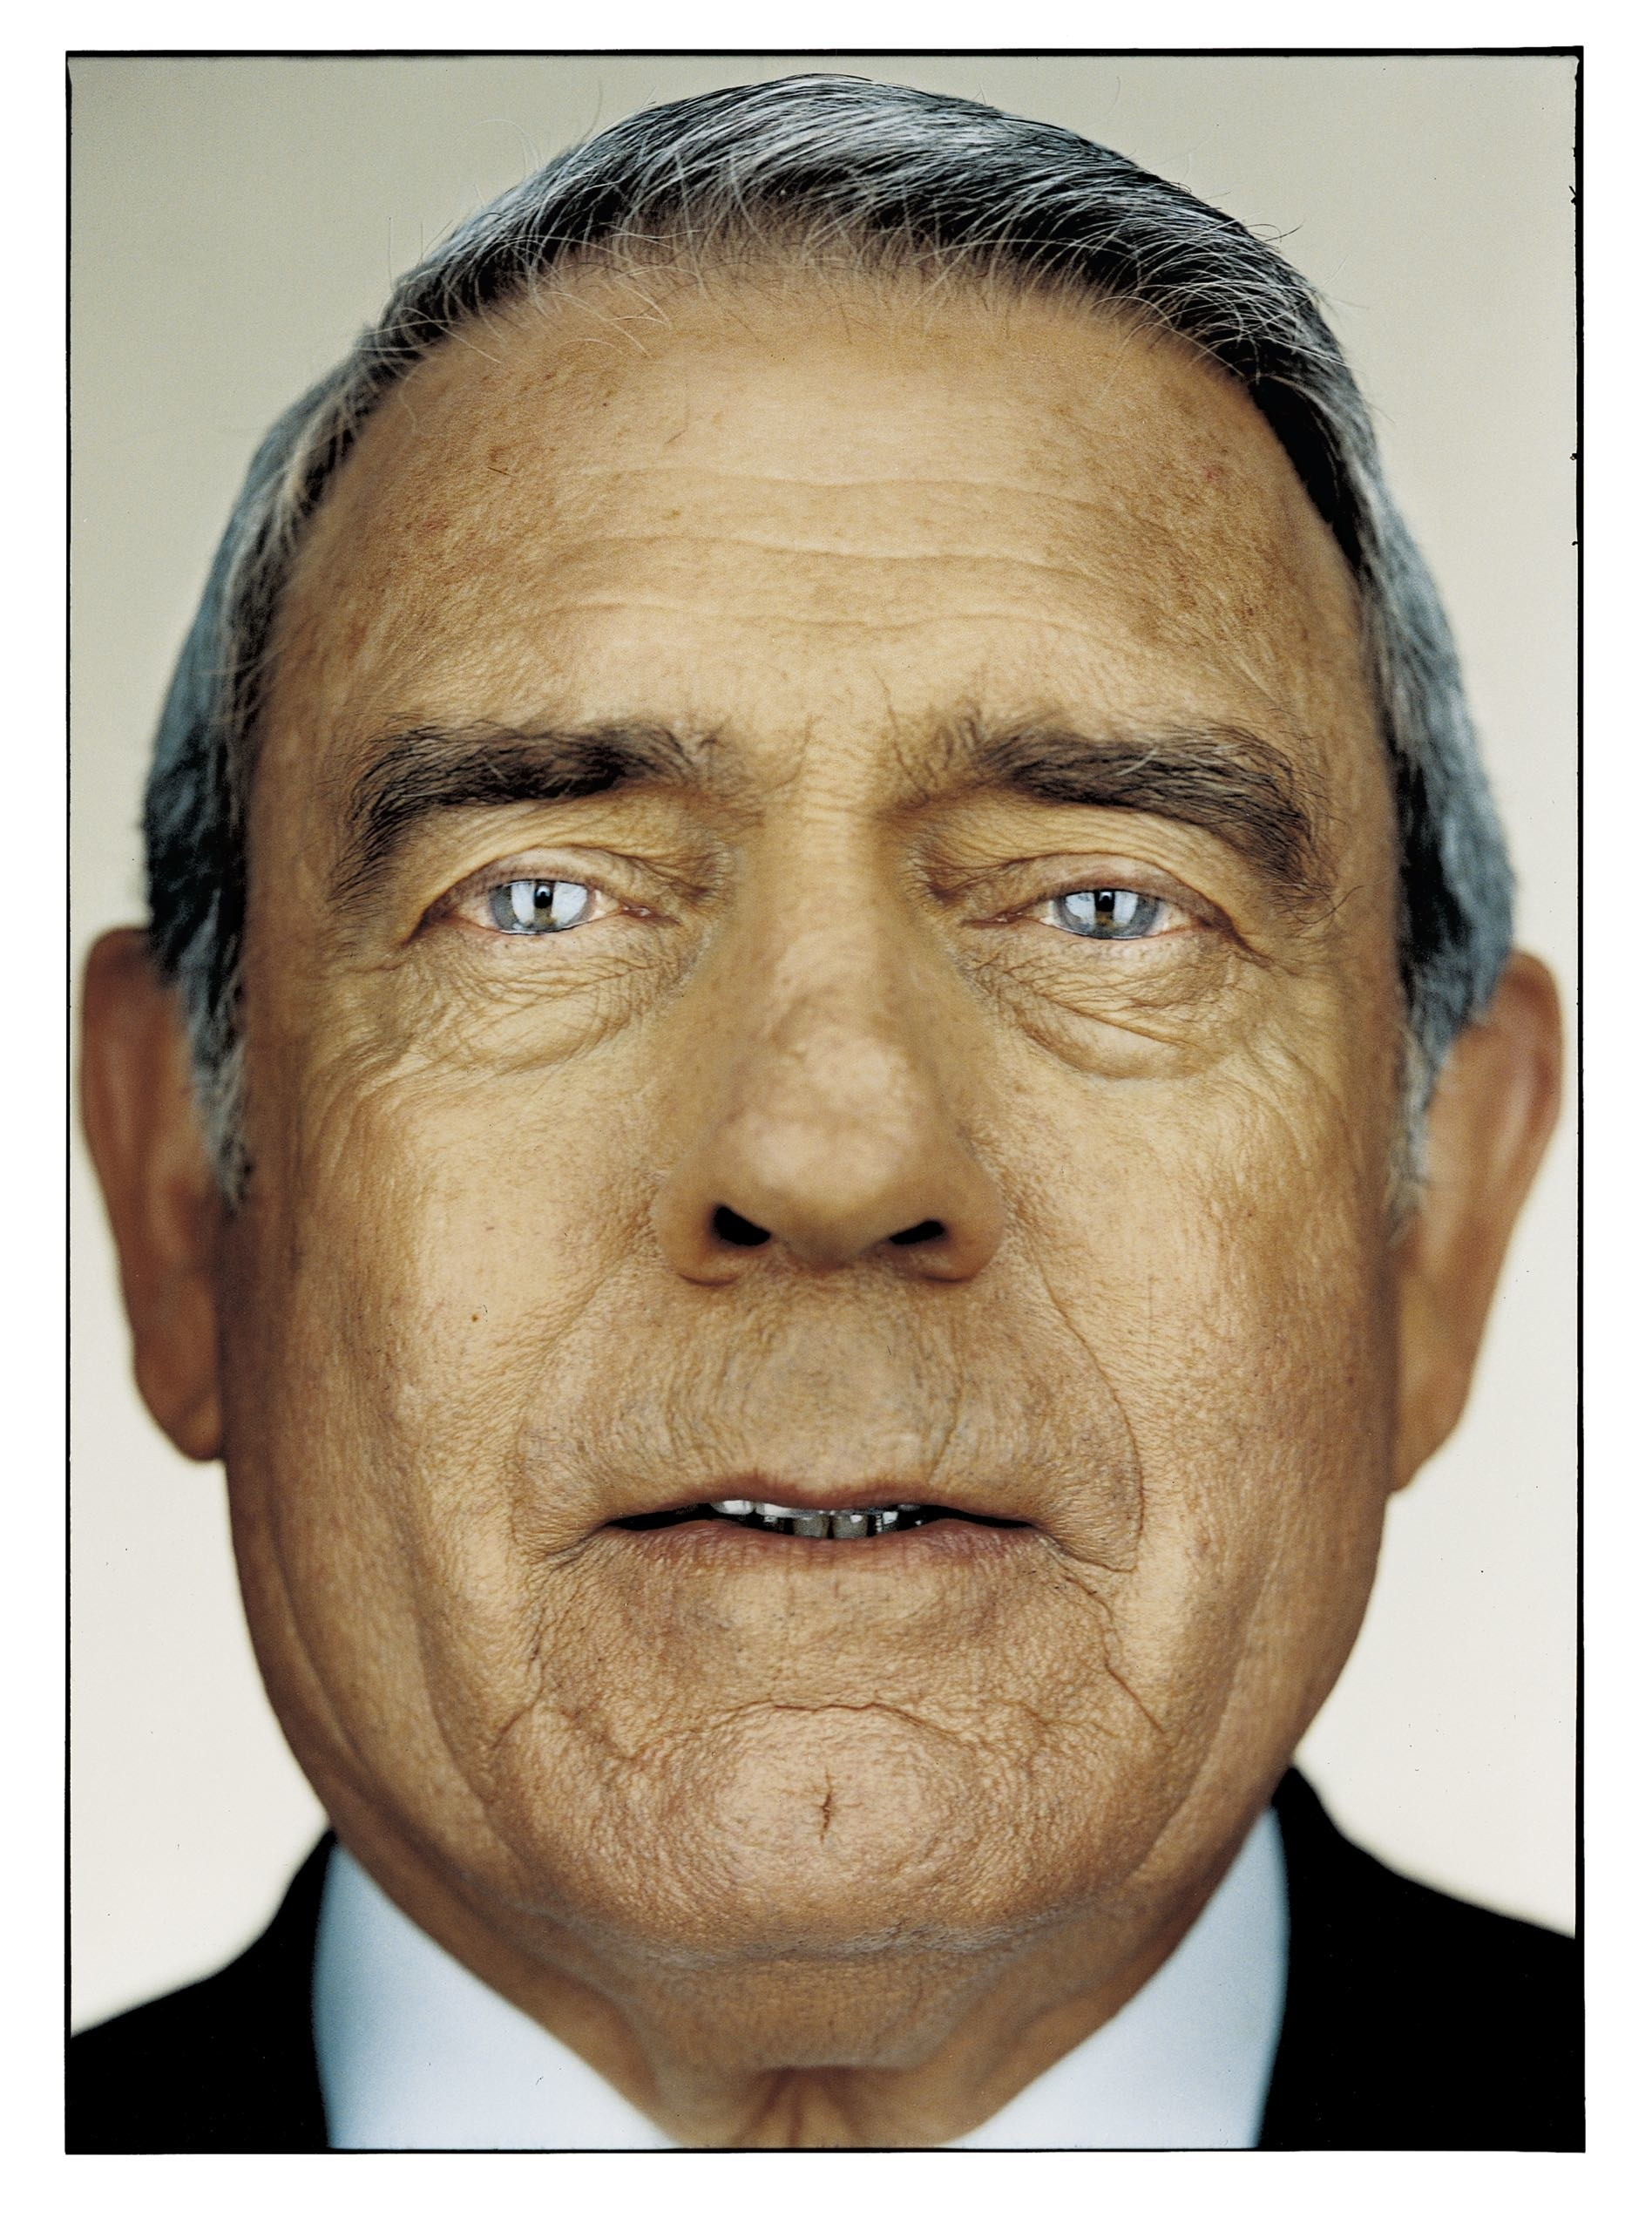 Photograph for The New Yorker by Martin Schoeller / Corbis